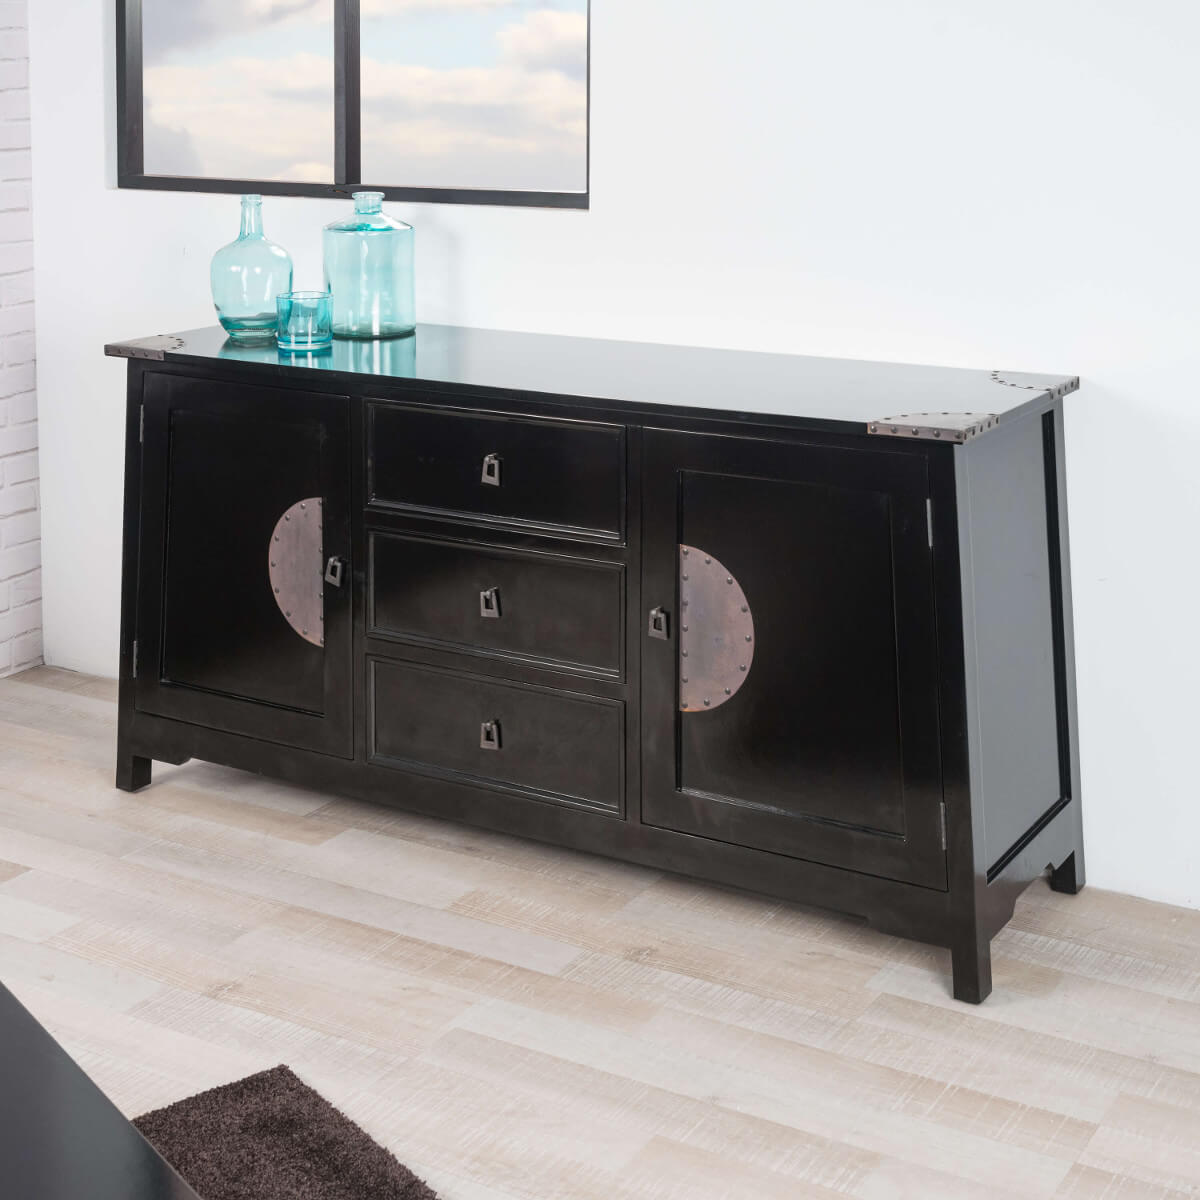 elegant meuble buffet salon en acajou thao noir with buffet salon pas cher. Black Bedroom Furniture Sets. Home Design Ideas